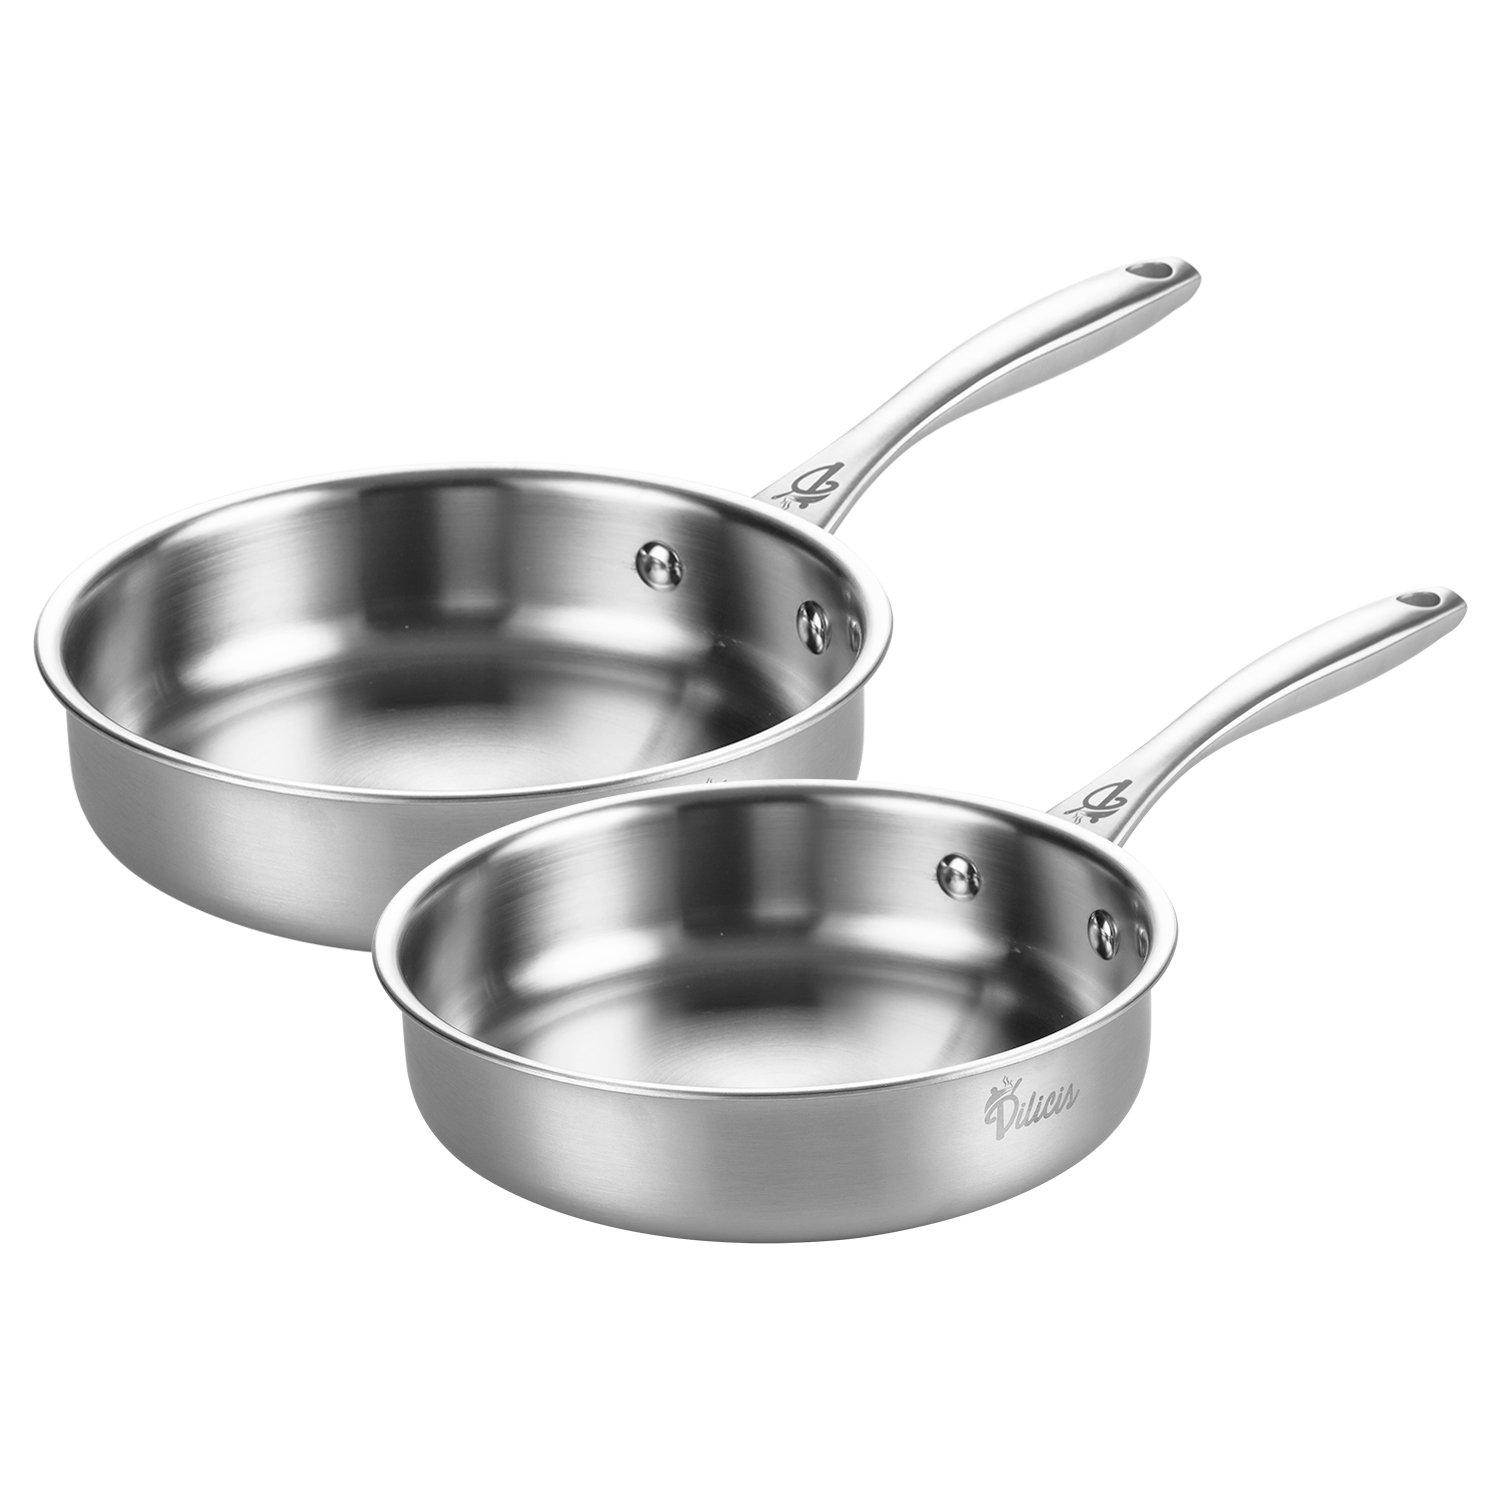 Tri-Ply Stainless Steel Frying Pan Cookware Set Physical Nonstick Fry Pan Professional Kitchen Restaurant French Skillet Omelette Dishwasher Safe, 8-Inch and 10-Inch, Silver [FDA Approved] Dilicis